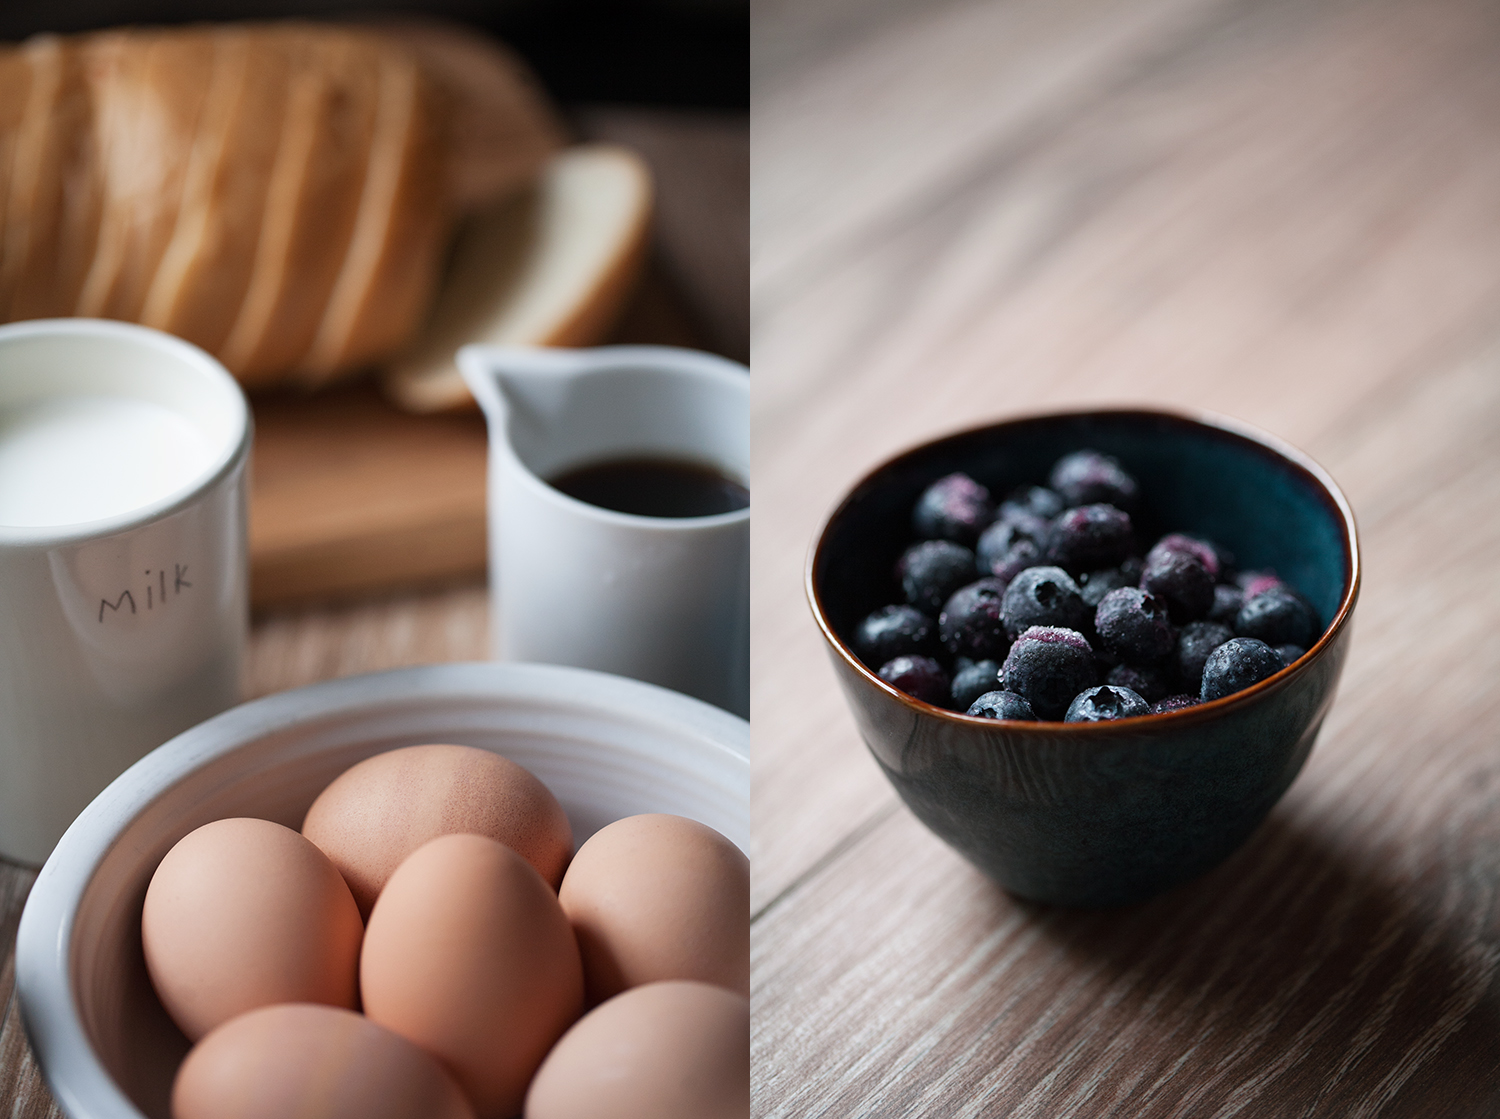 Food styling and photography by Michigan photographer Dena Robles